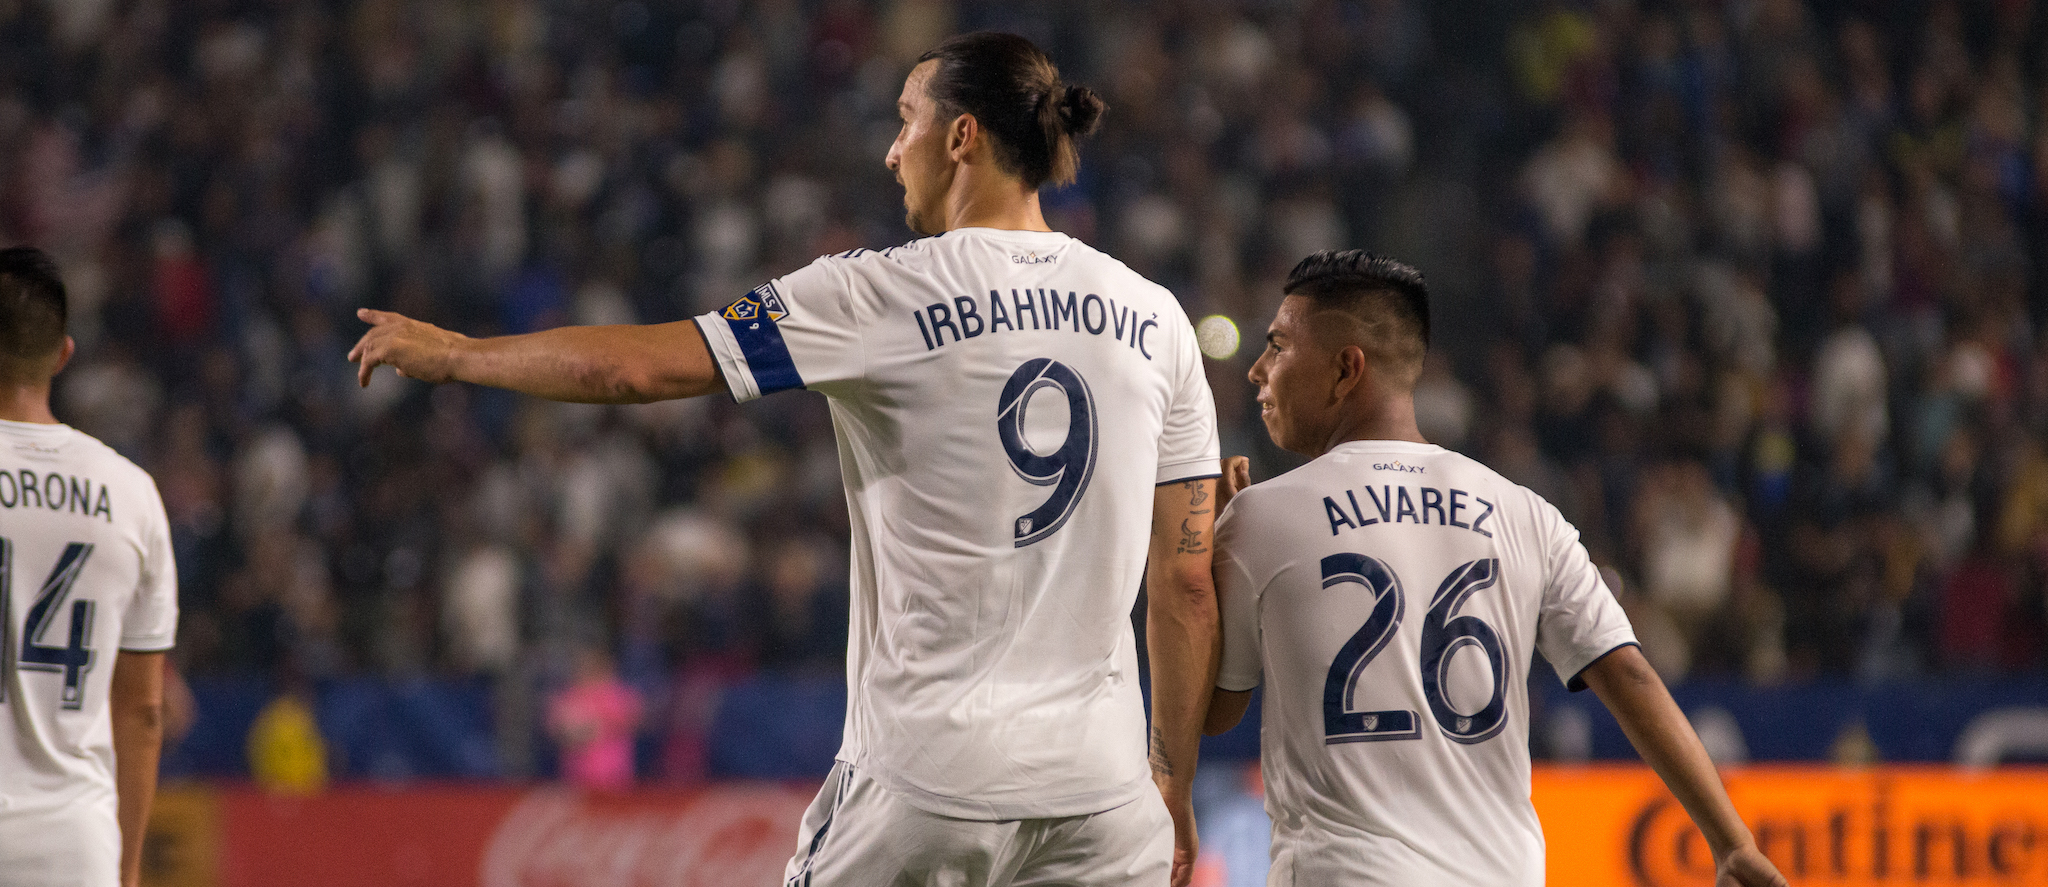 Zlatan Ibrahimovic and Efrain Alvarez after the Galaxy scored against Toronto FC on July 4, 2019